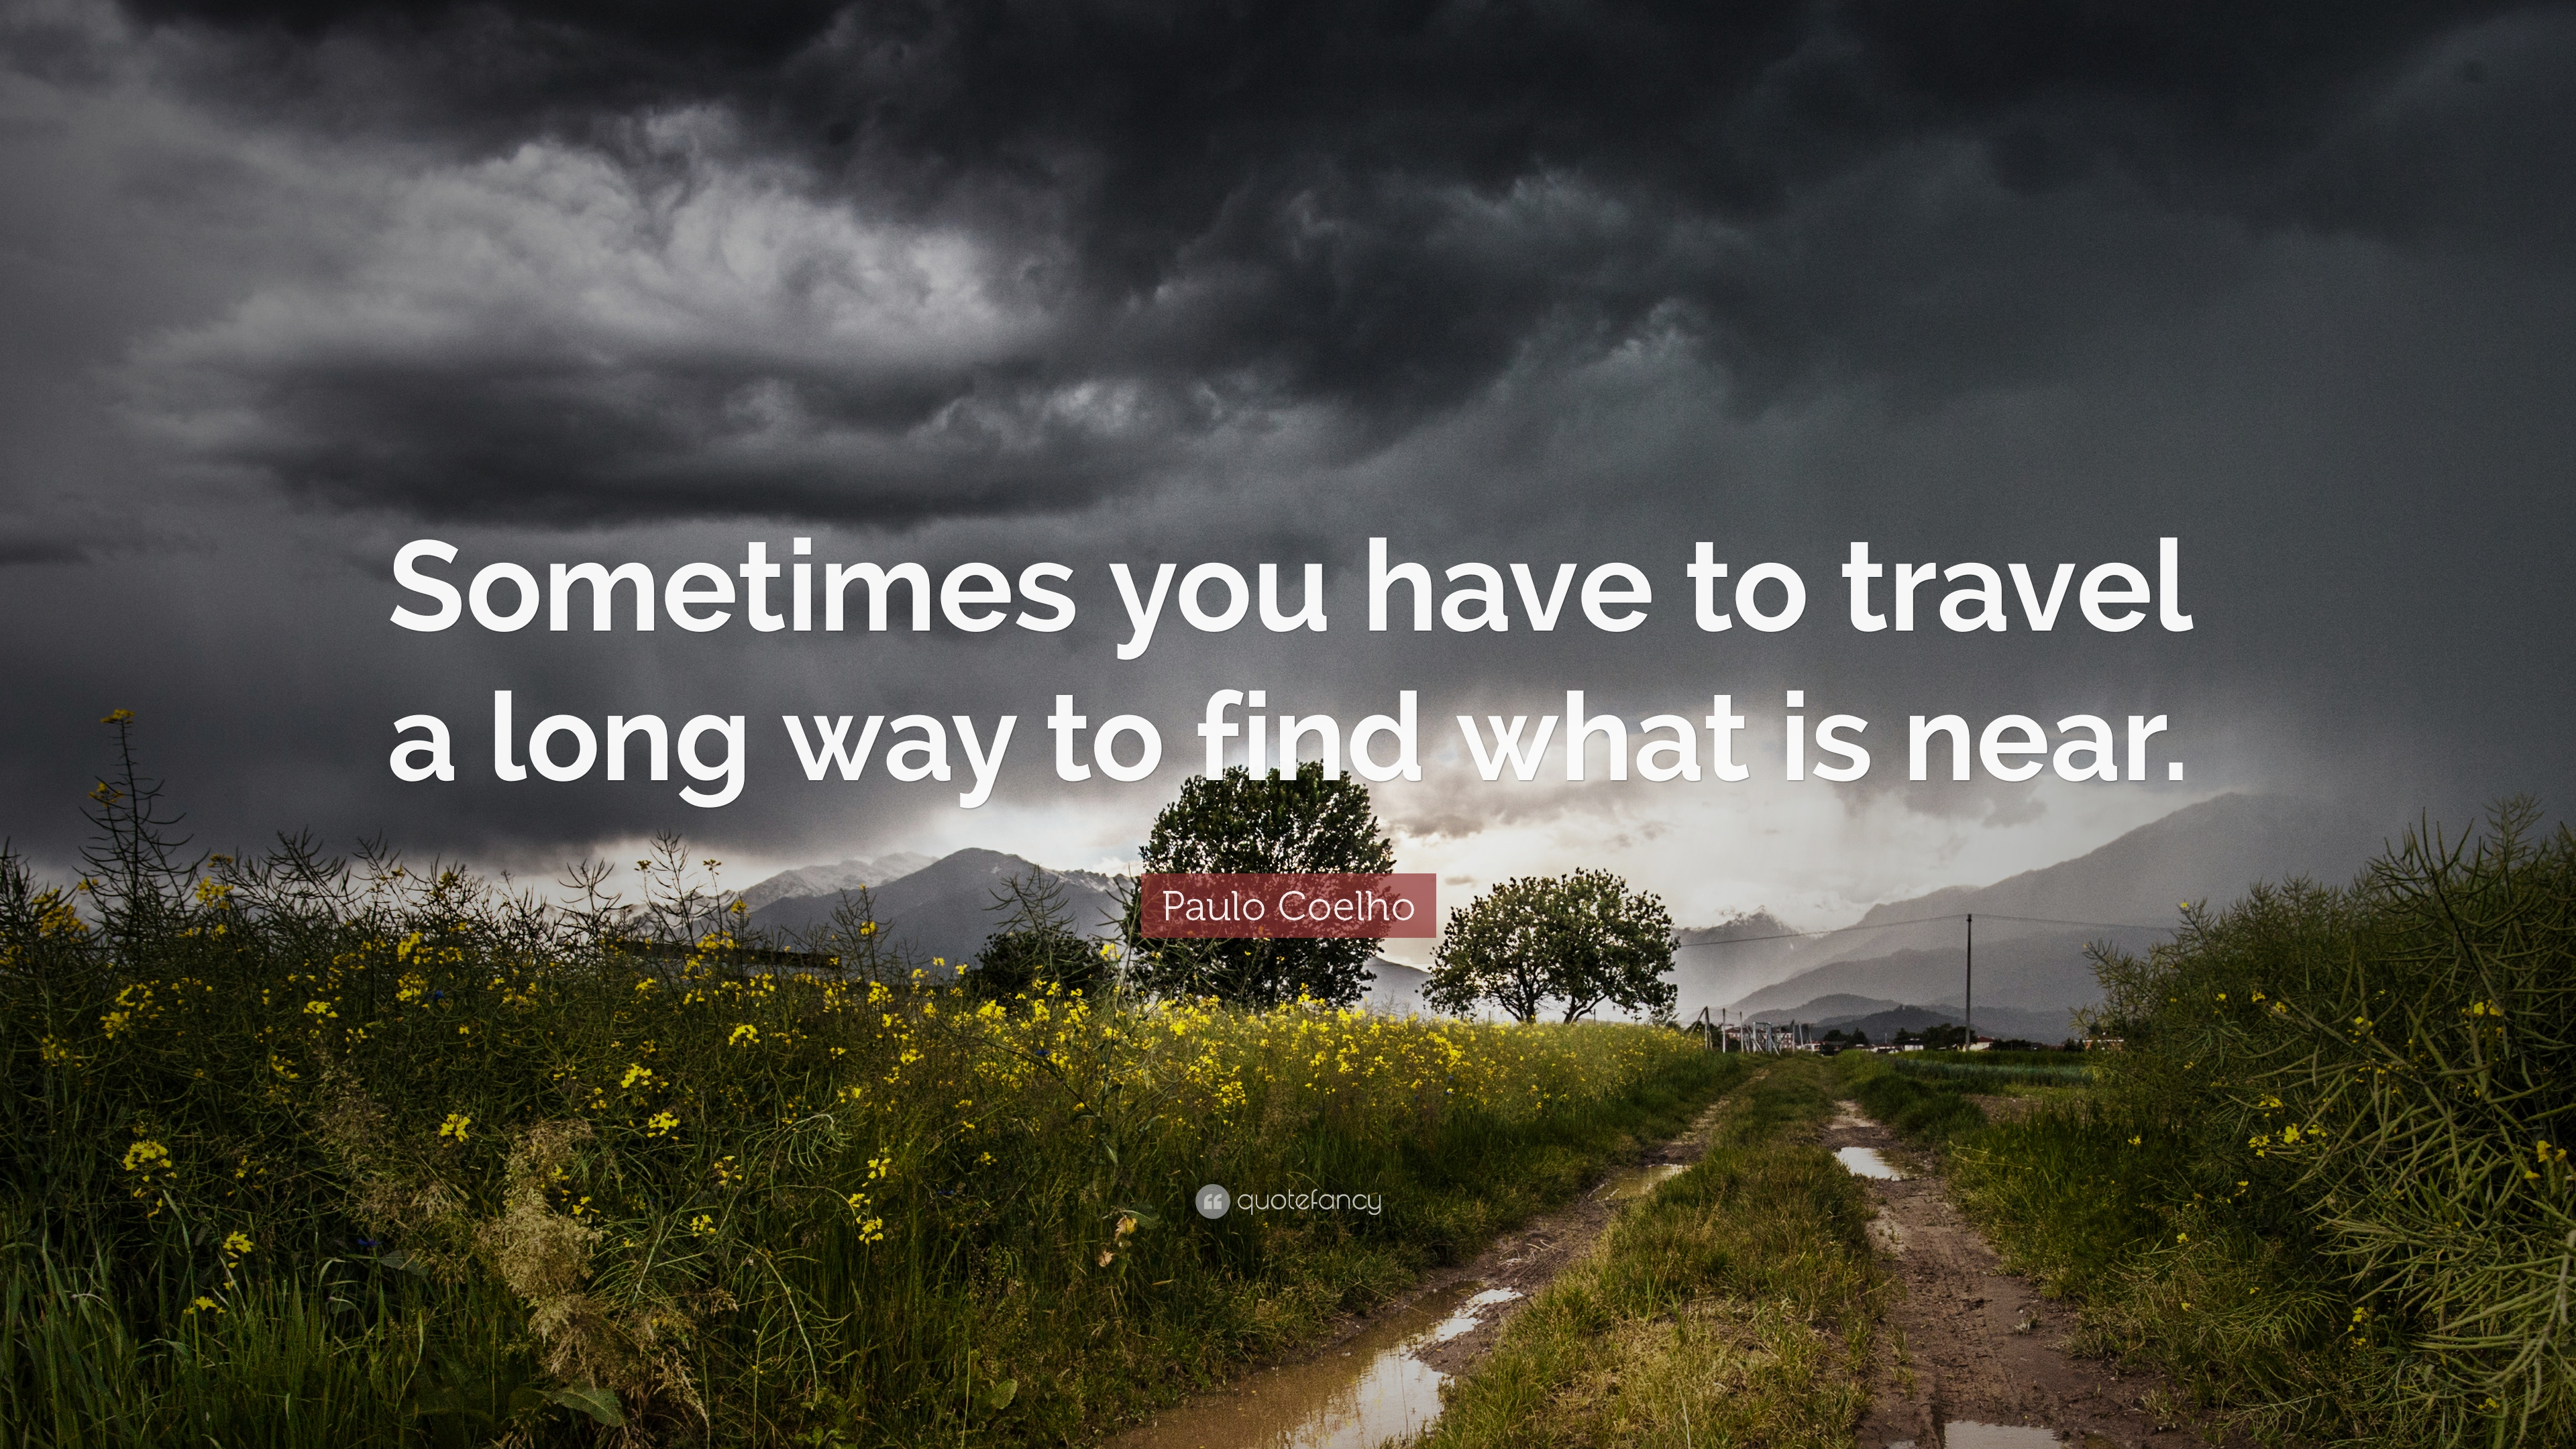 Paulo Coelho Quote Sometimes You Have To Travel A Long Way To Find